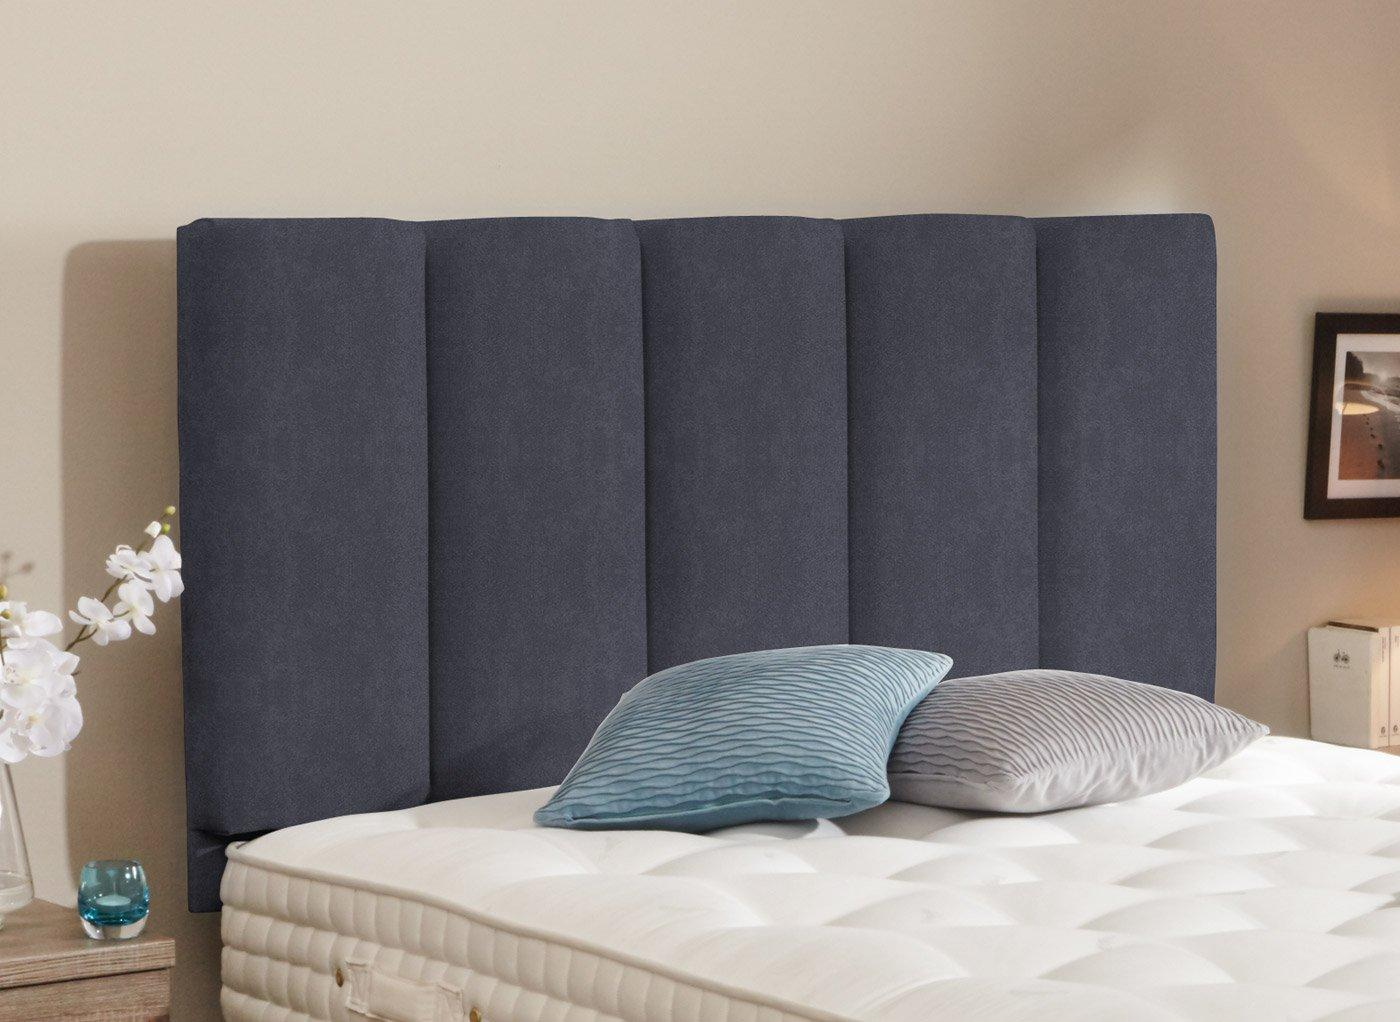 Gransmore Headboard 3'0 Single GREY